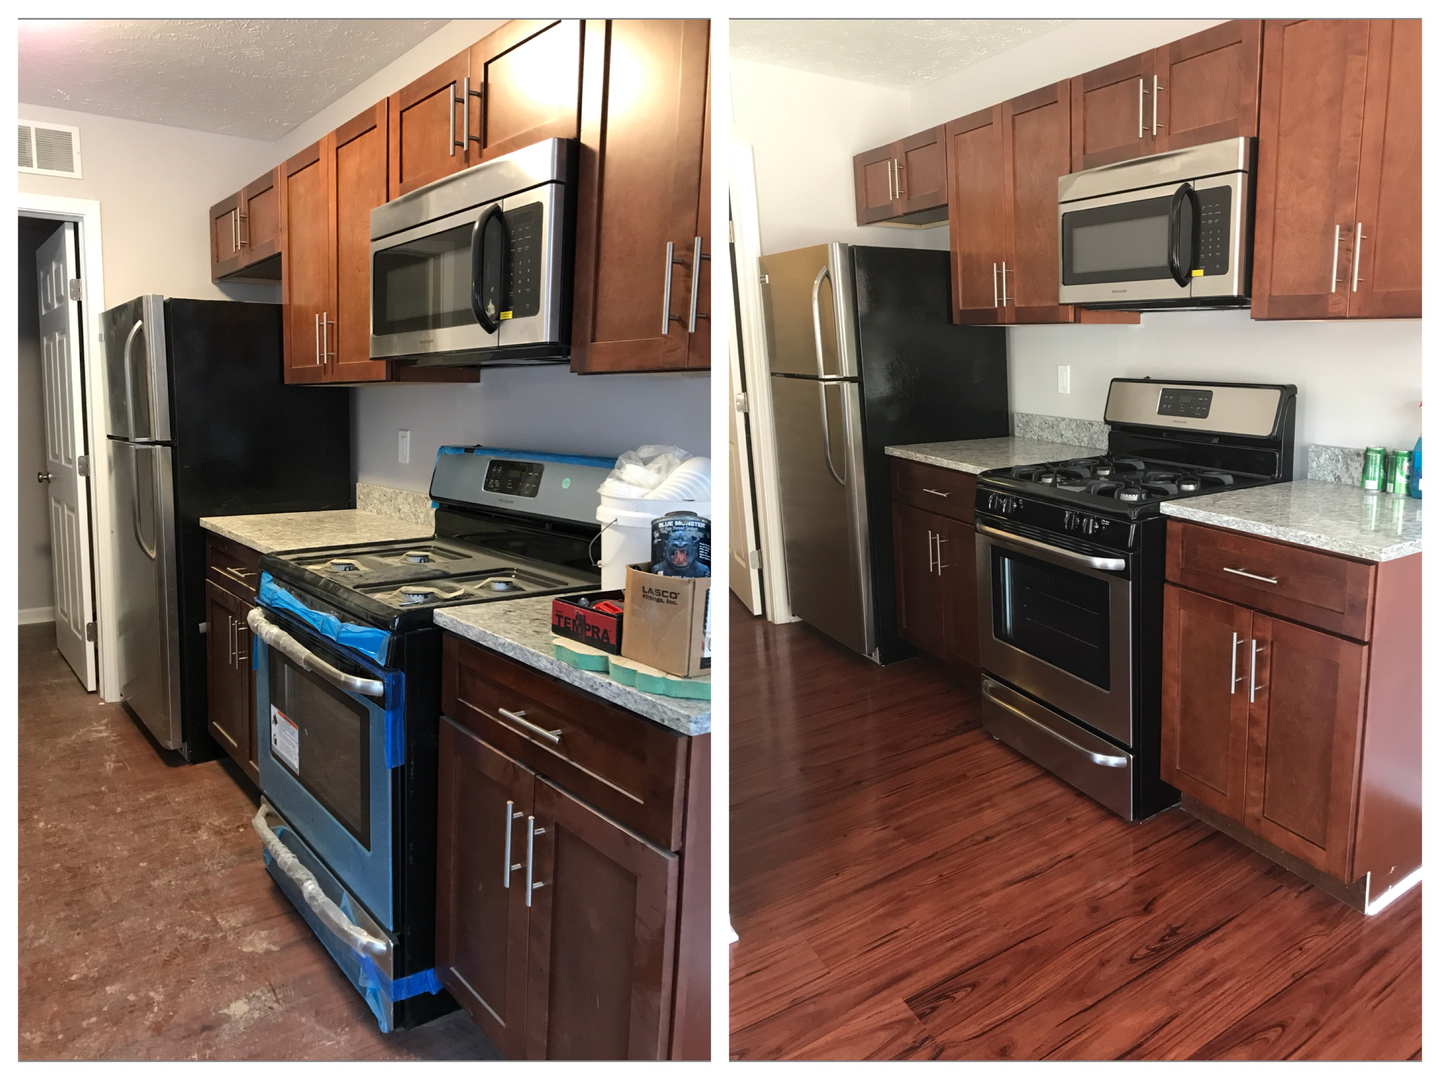 Cleaning service photo and video gallery   Before and After cleaning